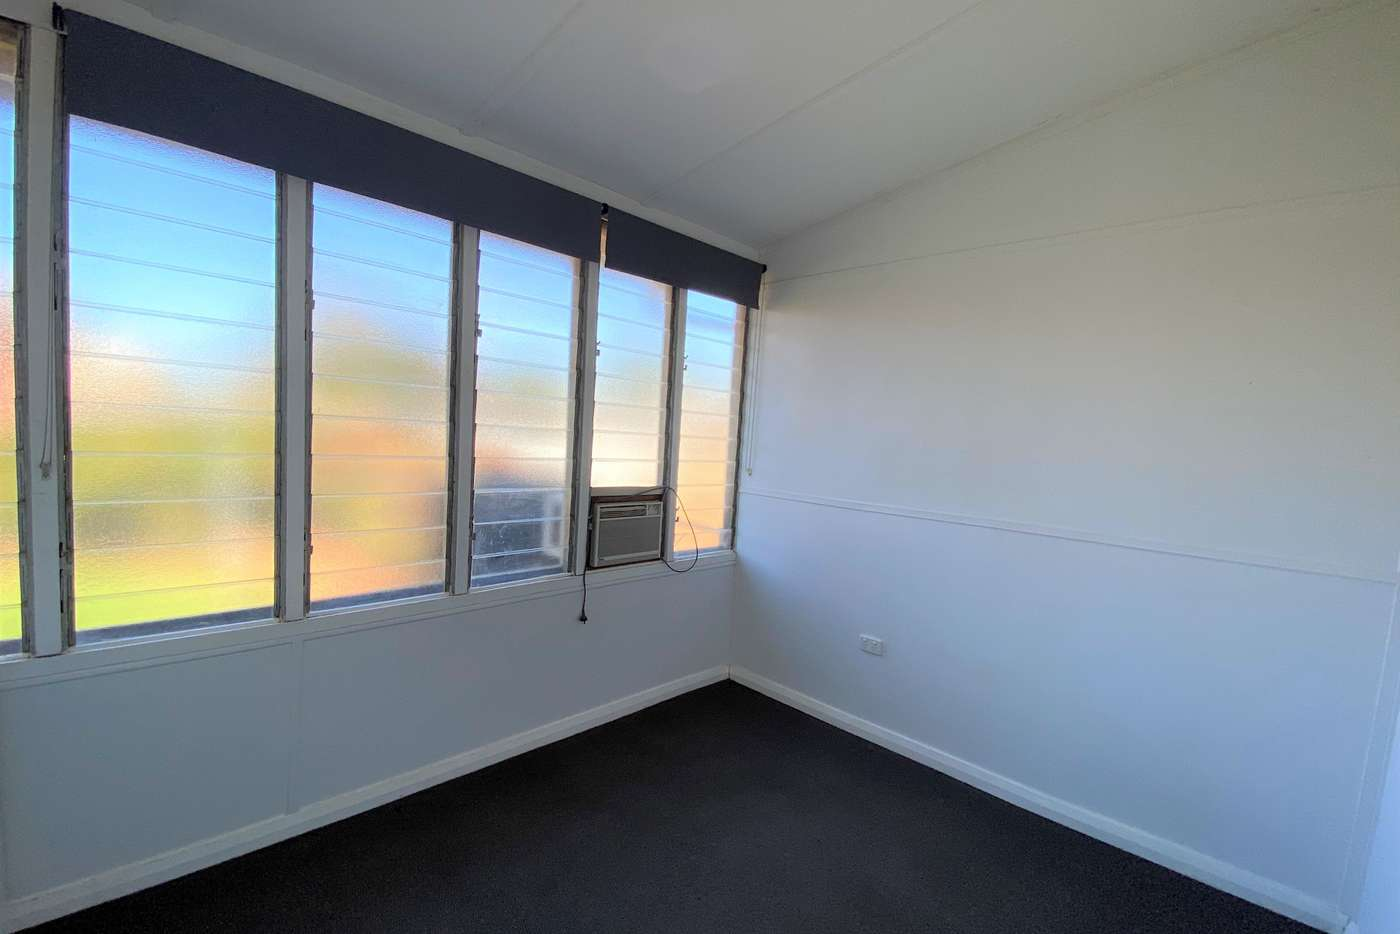 Seventh view of Homely house listing, 4 Rawson Street, Dubbo NSW 2830